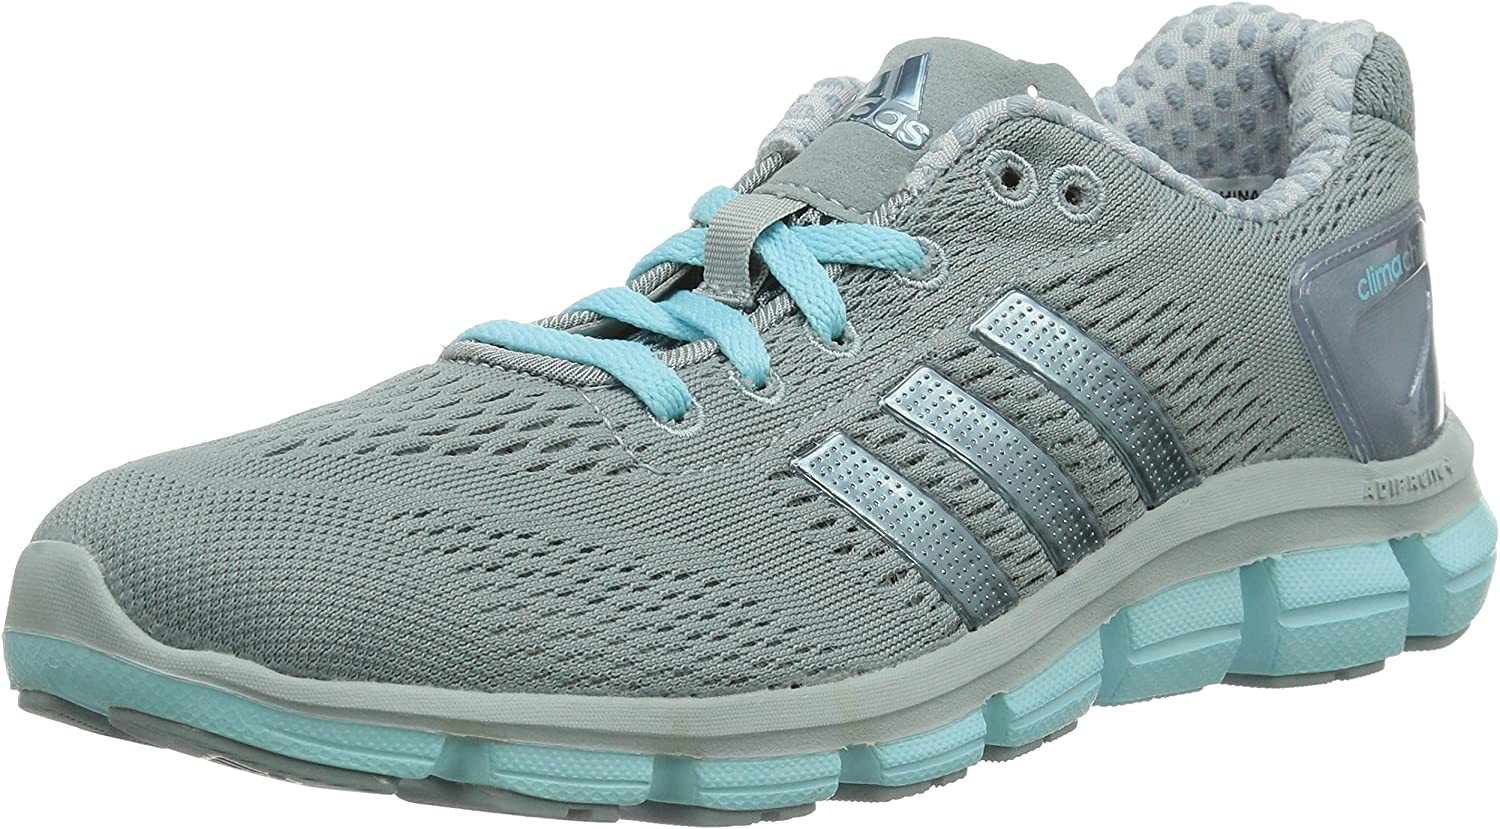 adidas Climachill Ride, Women's Running Shoes